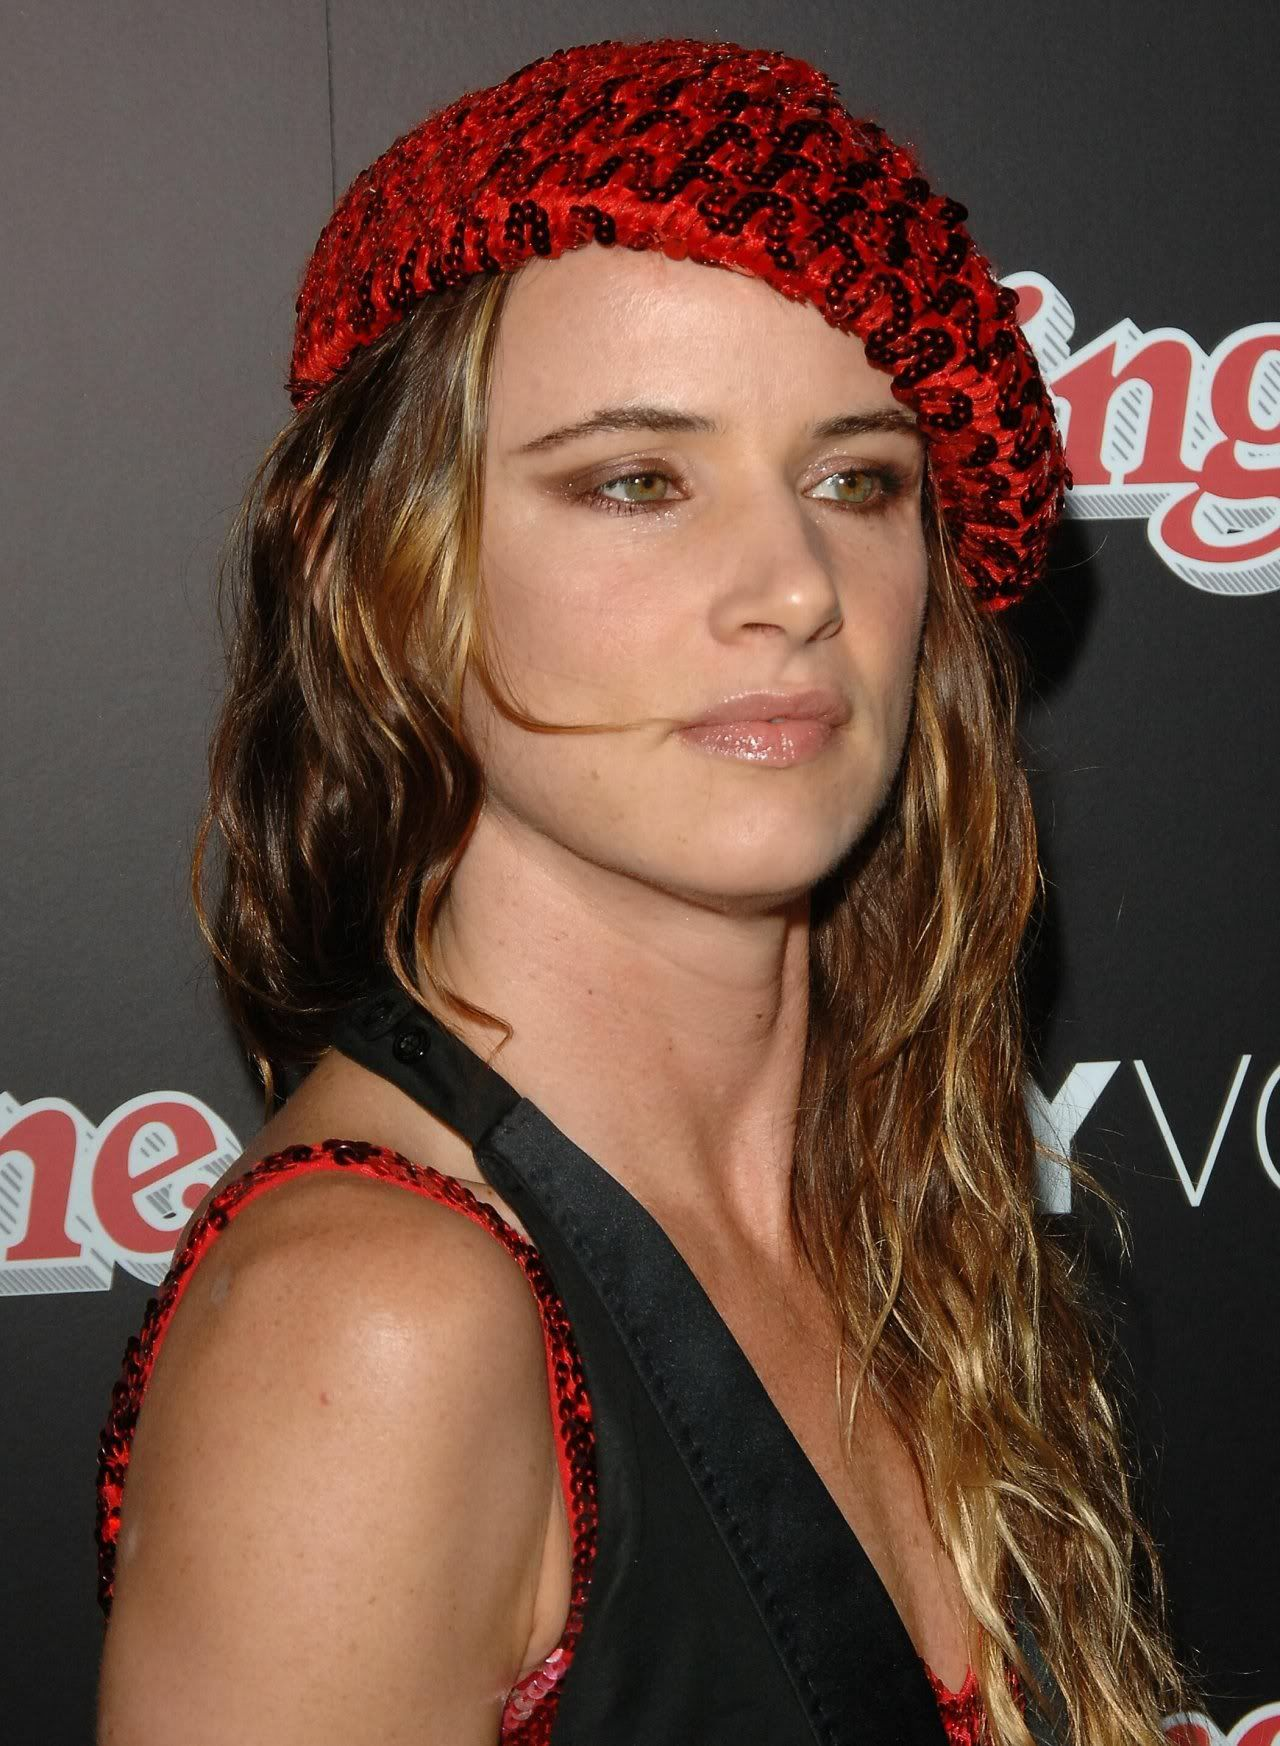 juliette lewis got love to kill